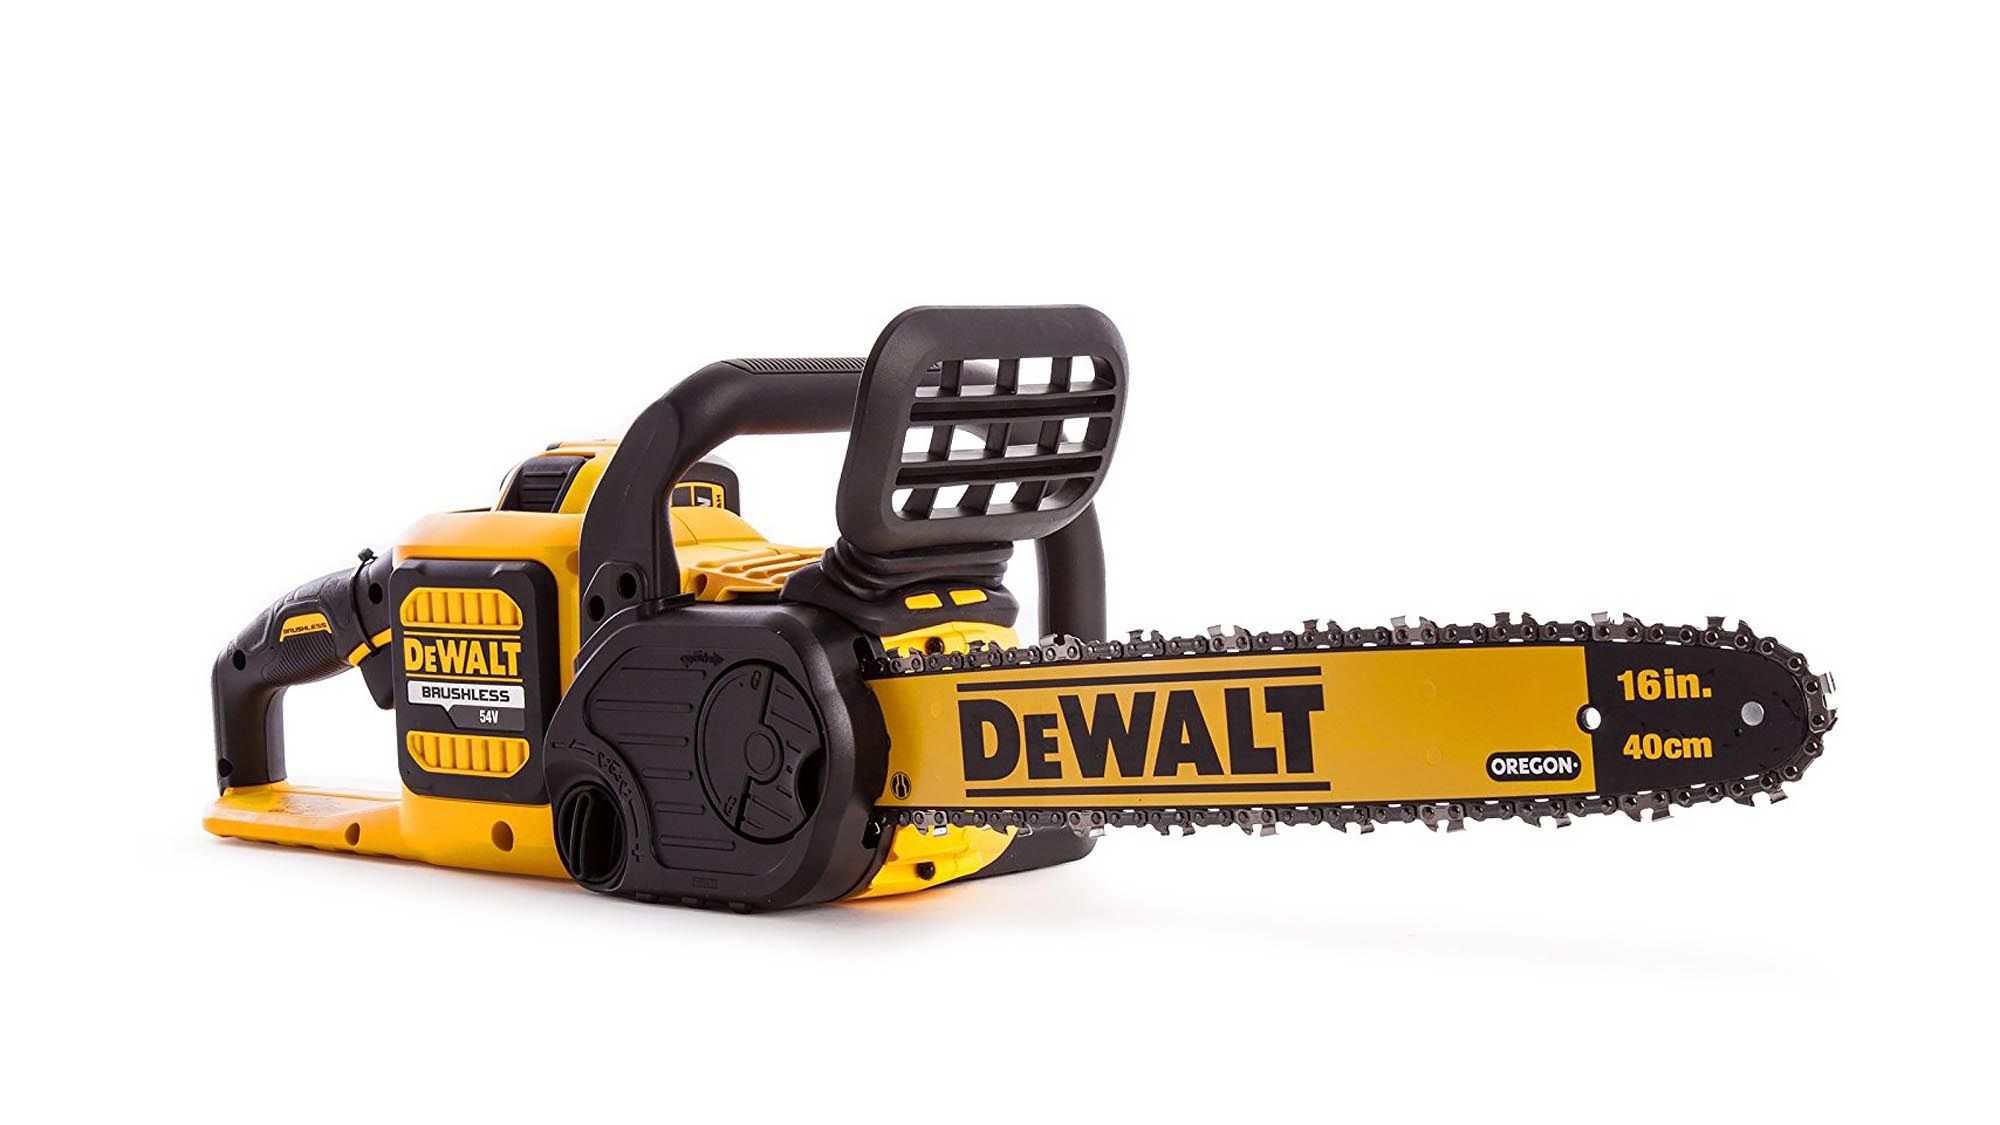 Best chainsaws make light work of heavy pruning jobs from 50 the dcm575 is an awesome chainsaw although cordless it doesnt compromise on power at all indeed its 15ms chain speed is the fastest here keyboard keysfo